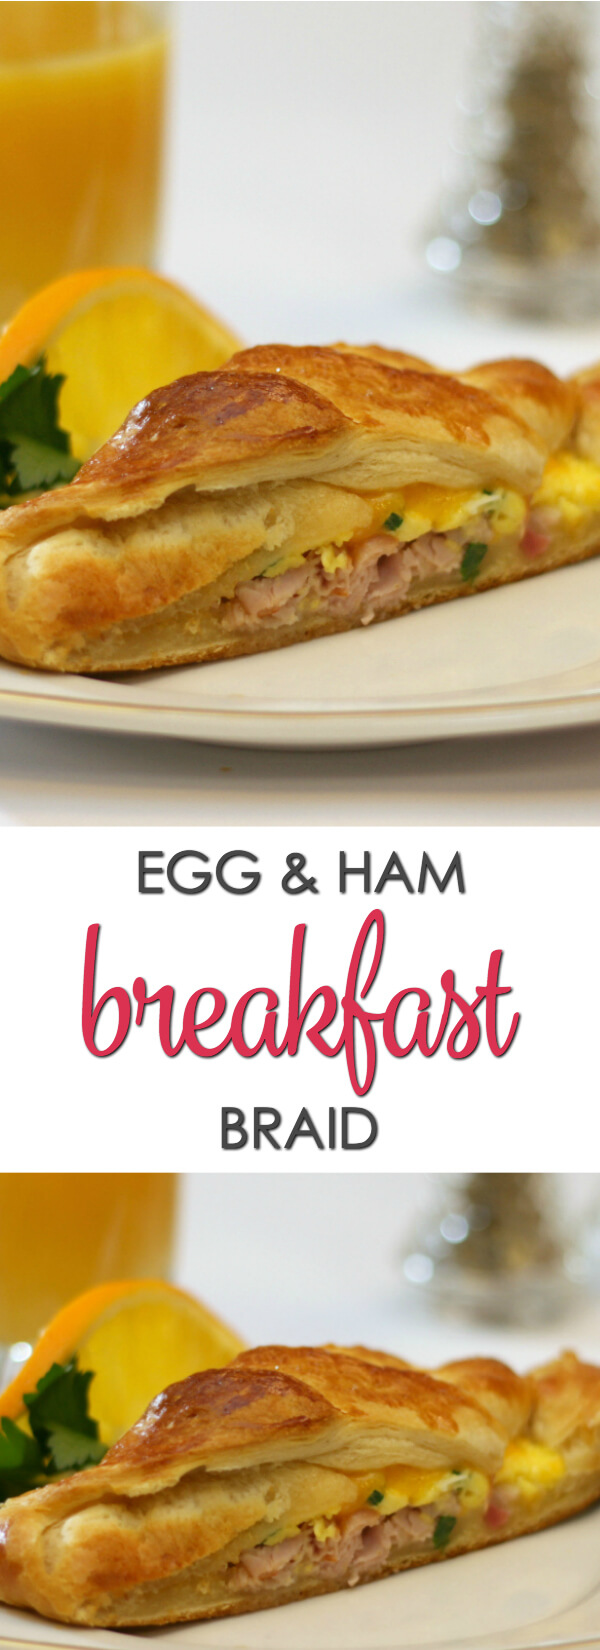 This Egg and Ham Breakfast Braid is one of my favorite easy breakfast dishes.